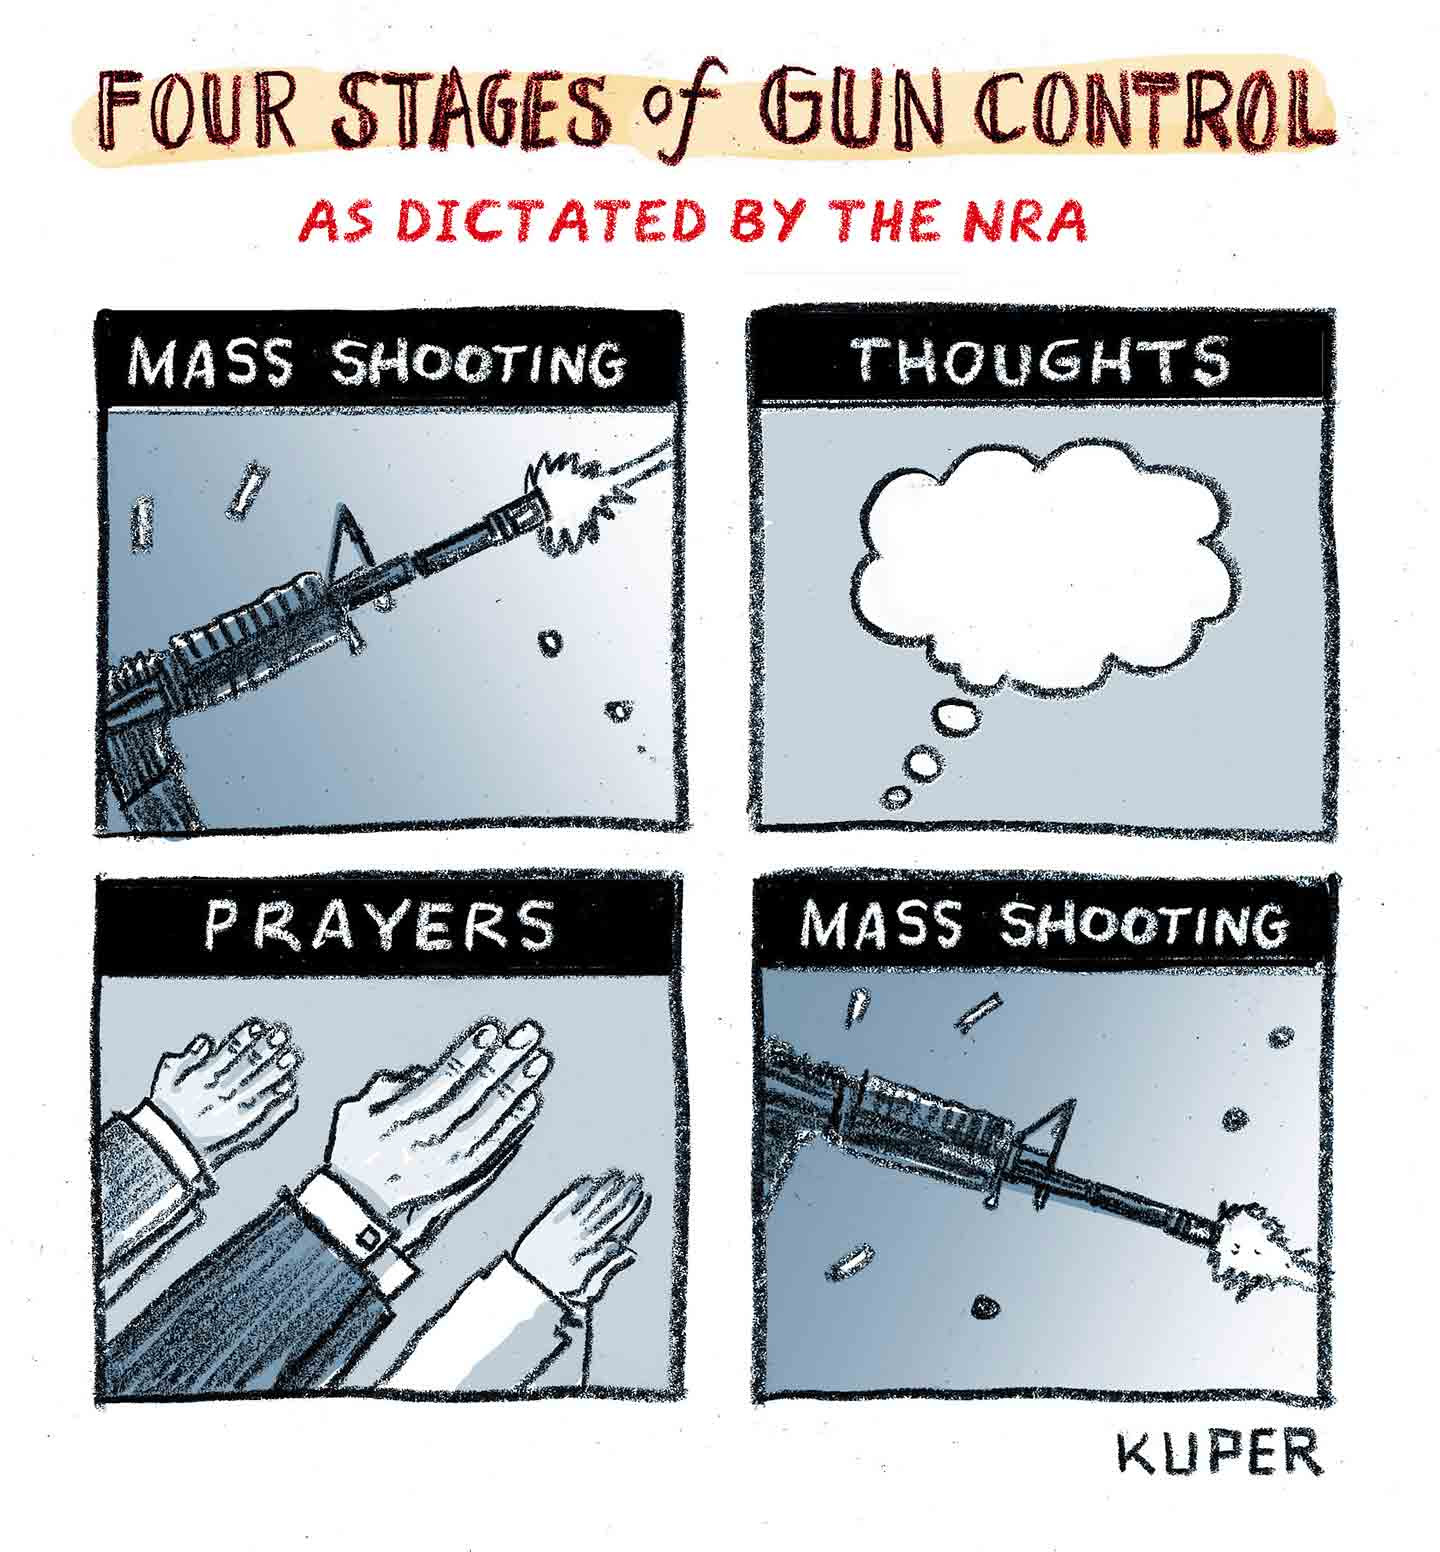 Peter Kuper cartoon - Four Stages of Gun Control as Dicatated by the NRA - 1 Mass Shooting 2 Thoughts 3 Prayers 4 Mass Shooting